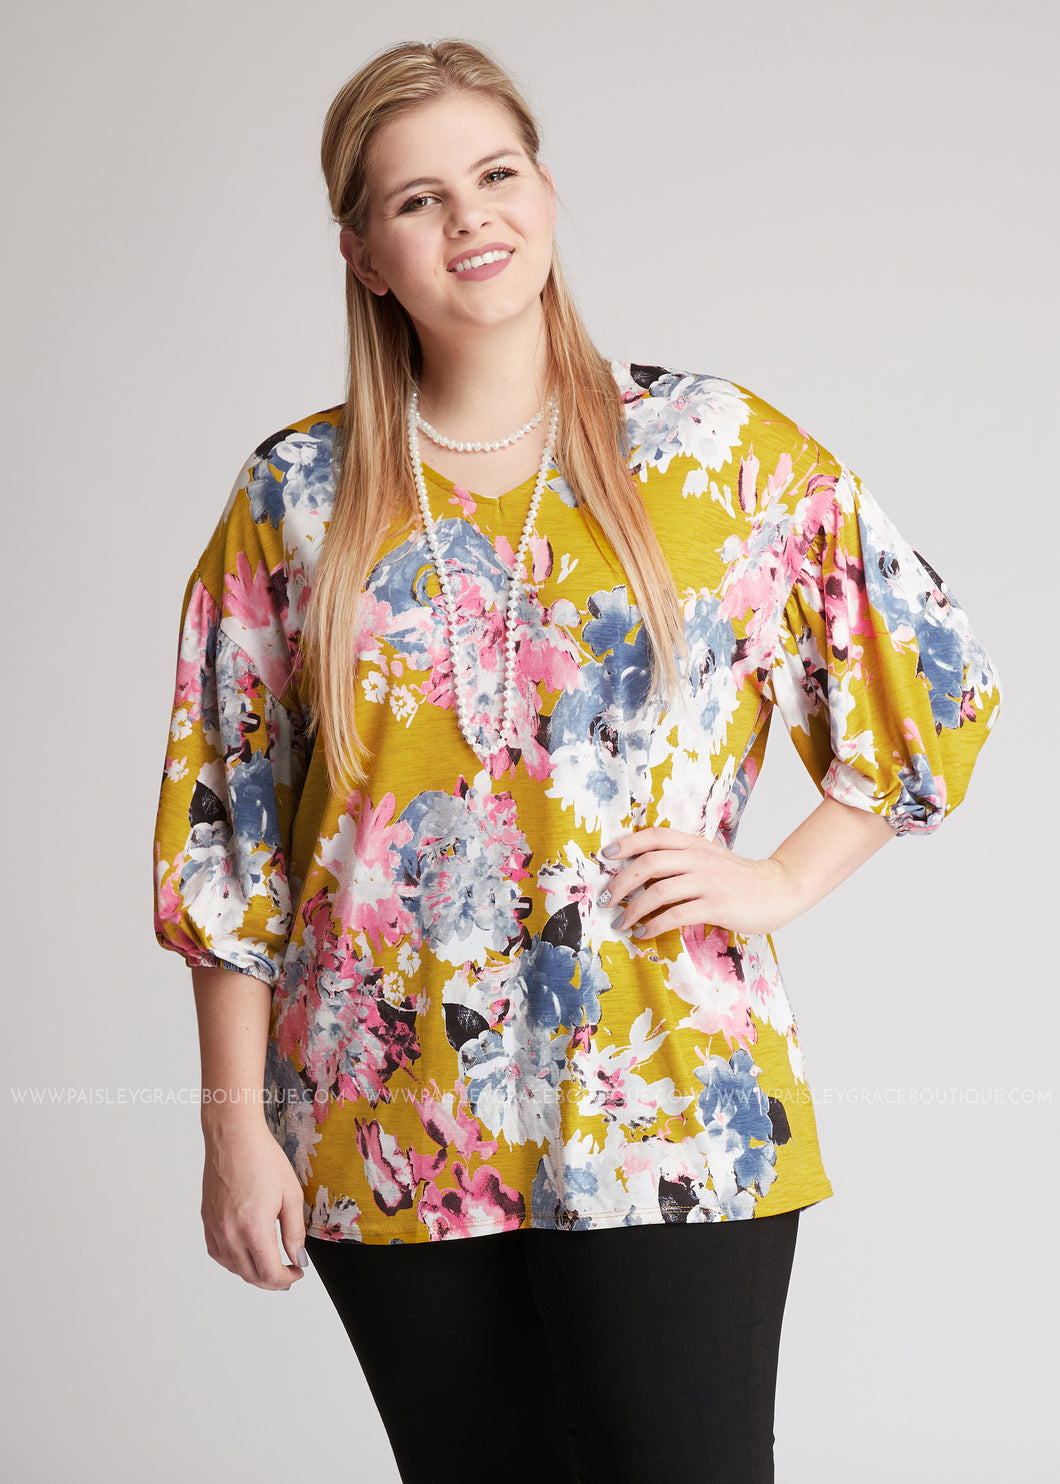 Floating Blossoms Top - FINAL SALE